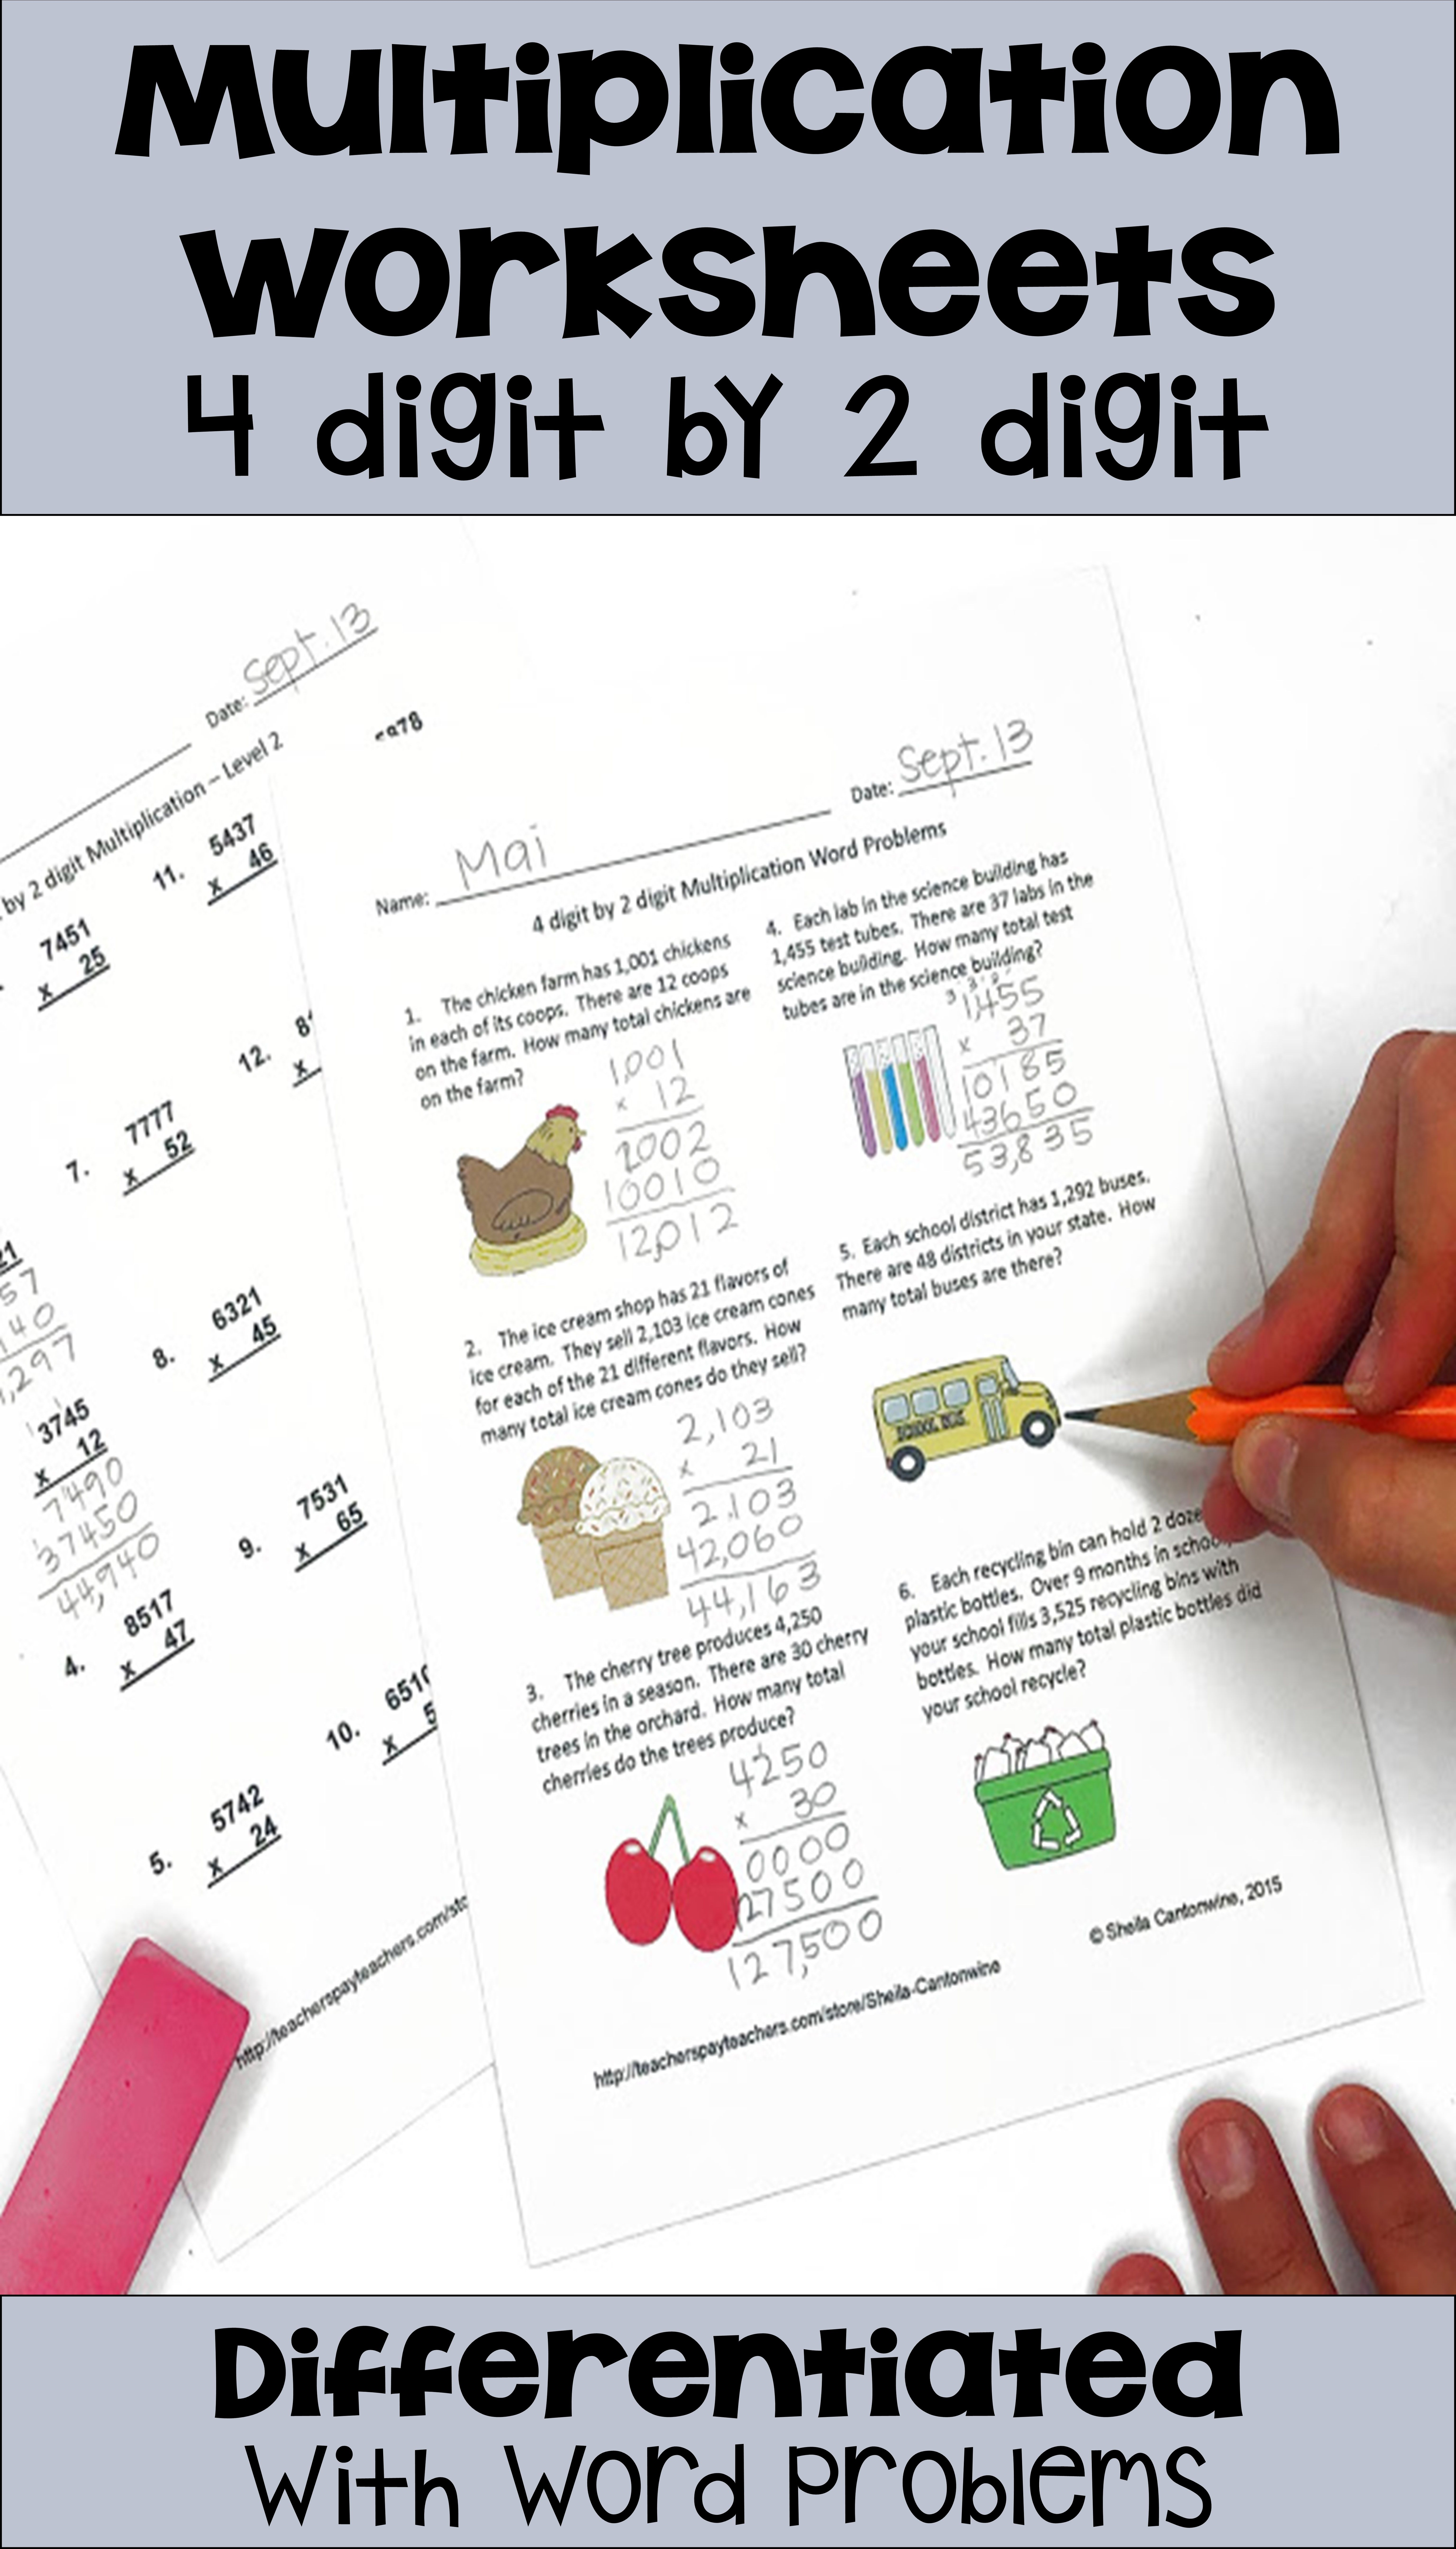 Multiplication Worksheets 4 Digit By 2 Digit 3 Levels